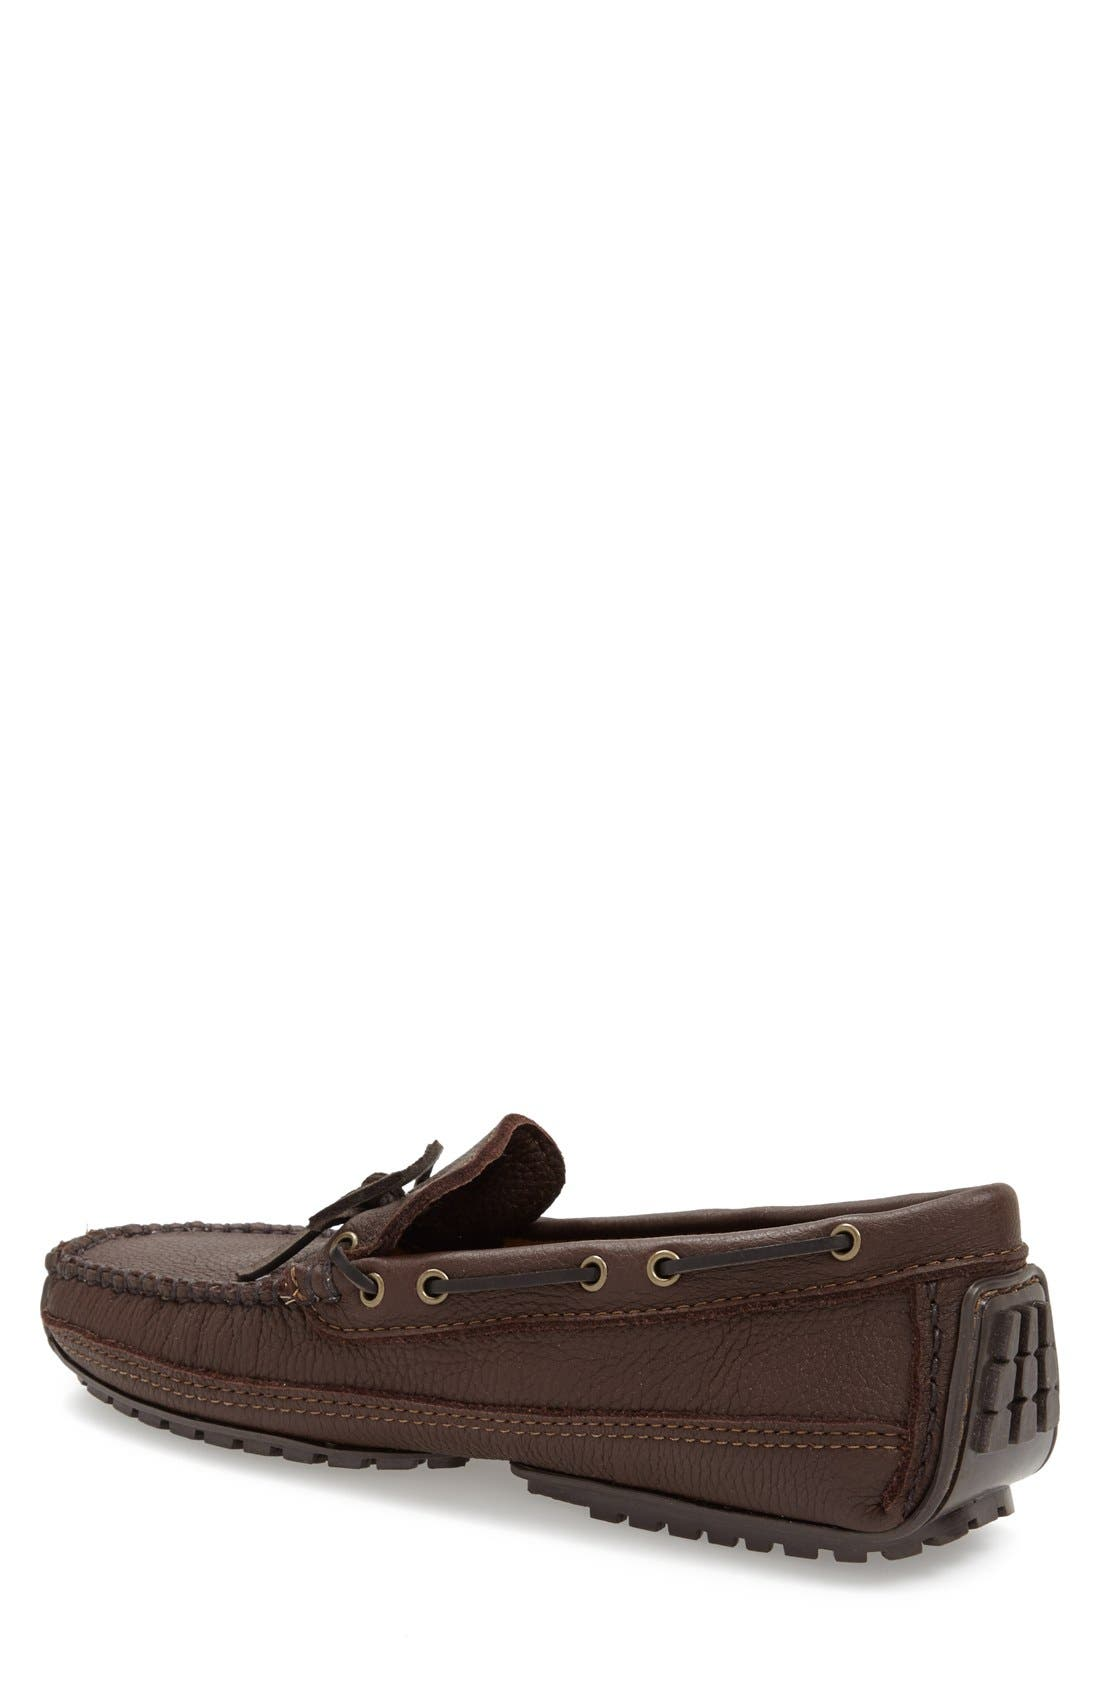 Alternate Image 2  - Minnetonka Moosehide Moccasin (Men)